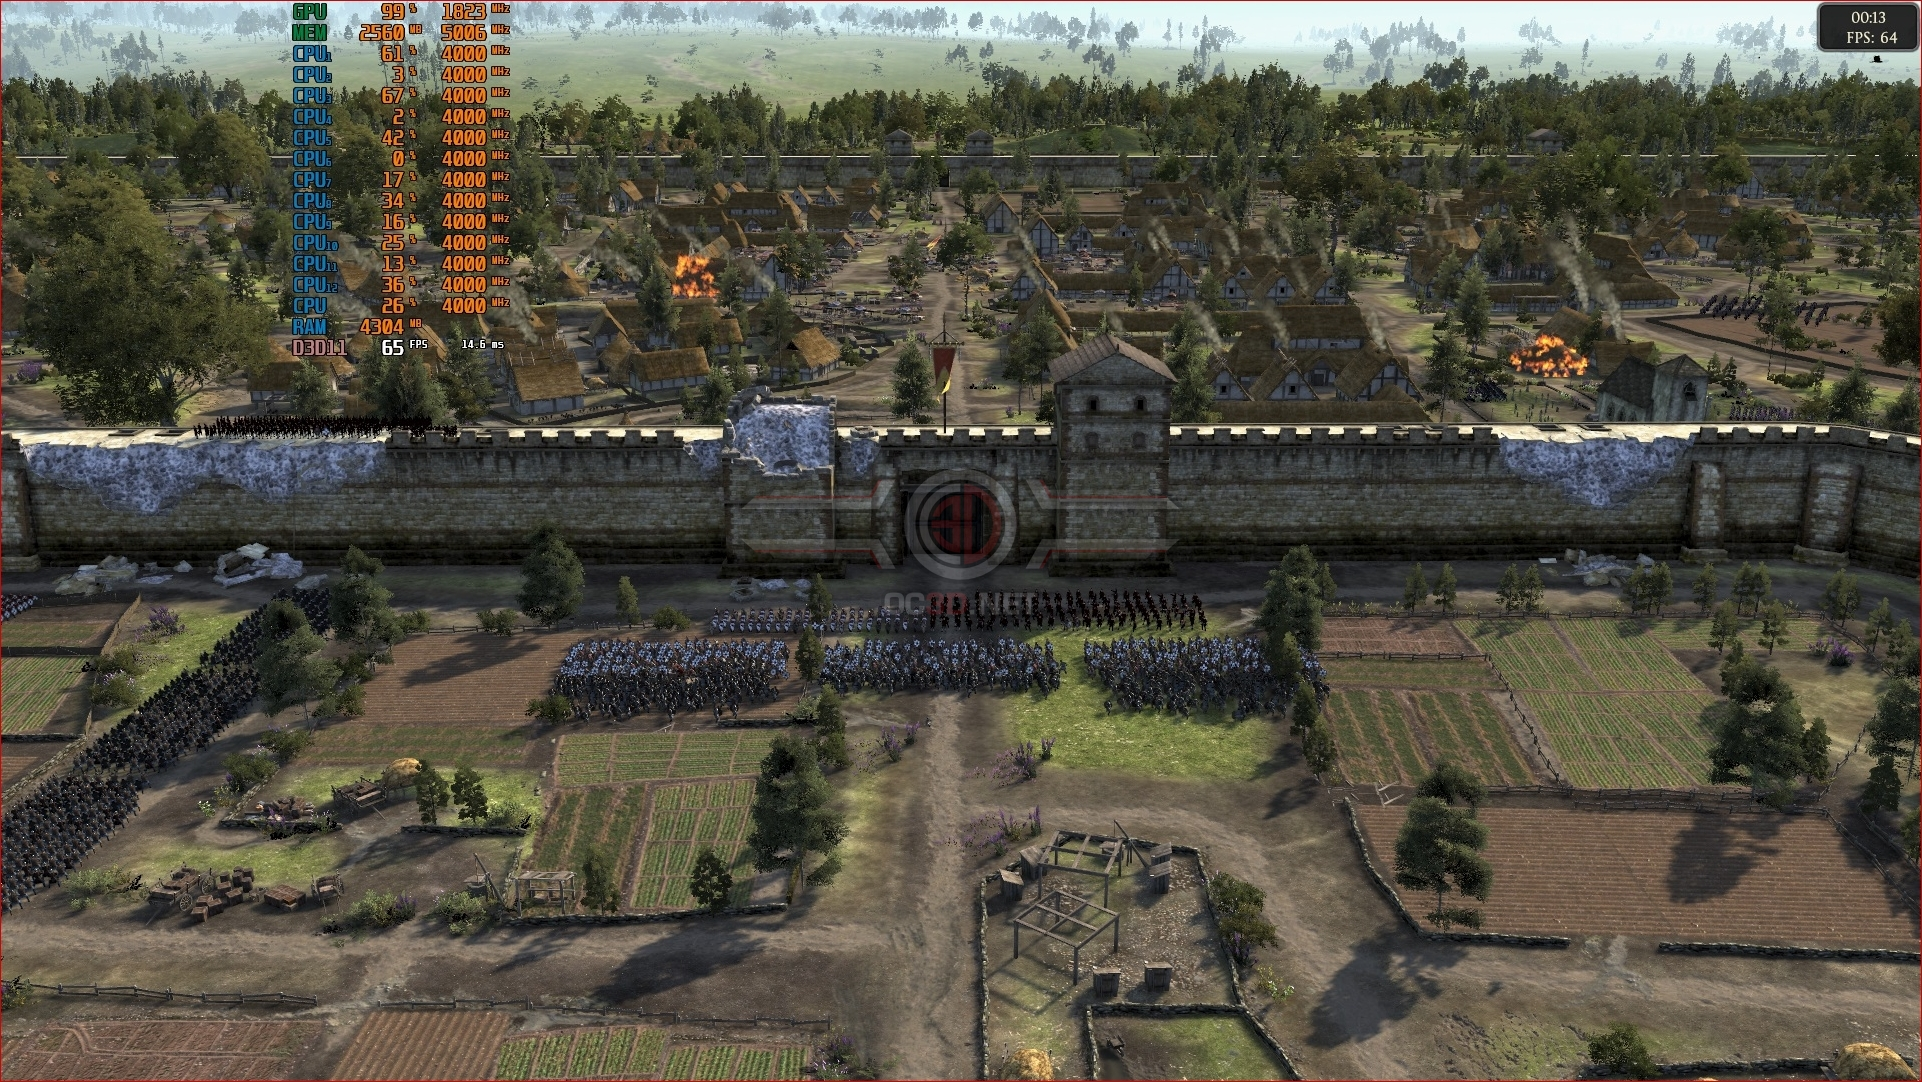 Total War Saga: Thrones of Britannia PC Performance Review